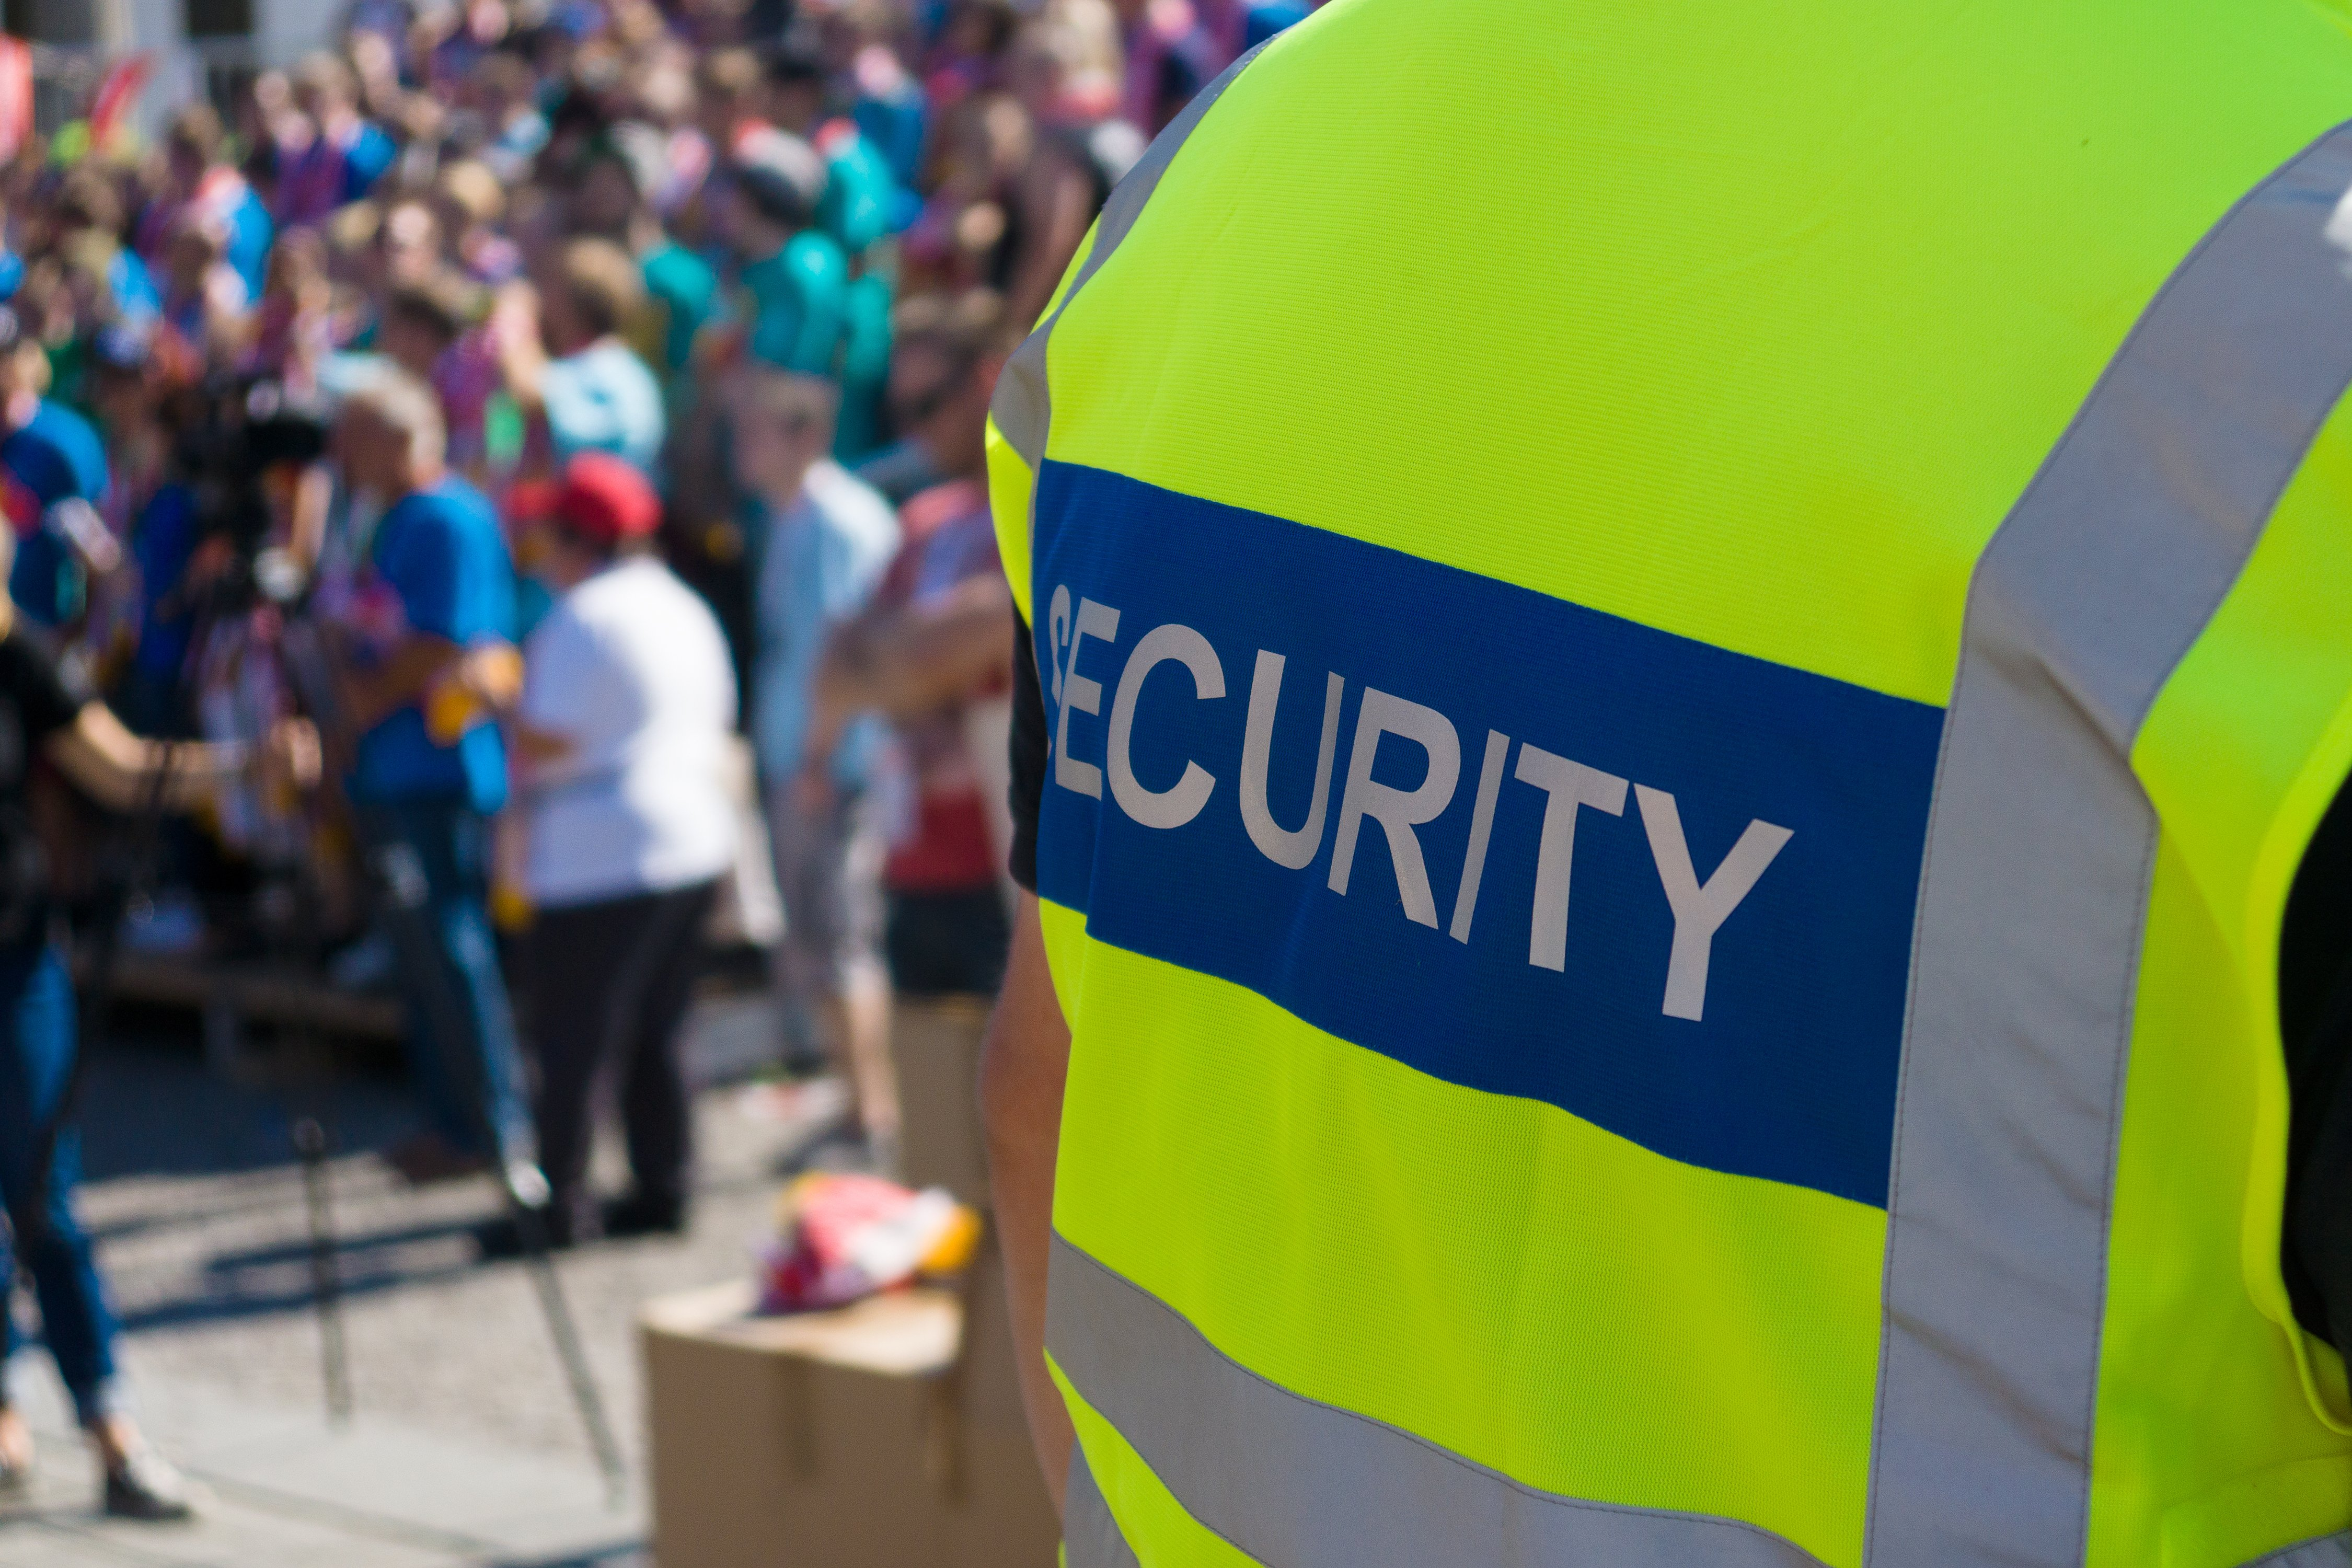 Event Security, Wedding Security, Manned Guarding London, Manned Guarding Coventry , Manned Guarding Birmingham, Manned Guarding Nottingham, Security Guards Service, security, Coventry,Security, Close Protection,Security Guards, Event Security, Door supervisors, Birmingham, London, CCTV, Protection, VIP Security, SIA, Bodyguard, Warwickshire, Midlands, Essex, personal security guards, event security guards, security guarding, the security guard, security guard firms, security guards for events, licensed security guard, a security guard, event security guard, security guards, security guard office. security guard officer, quality of security guard, security guard offices, security guard licenses, security 24 guarding, security guard costs, role of security guard in an organization, security guards company, security guards companies, companies that need security, guards, private security guard companies, security guard companies, security guarding companies, top 10 security guard companies, top security guard companies, securities guard company, names of security guard companies, security guarding company, unarmed security guard companies, best security guard company, biggest security guard companies, top 5 security guard companies, armed security guard companies, security guard companies in Coventry, security guard companies near me,  security guard company near me, security guard company names, top ten security guard companies,  best security guard companies, largest security guard companies, all security guard companies, local security guard companies